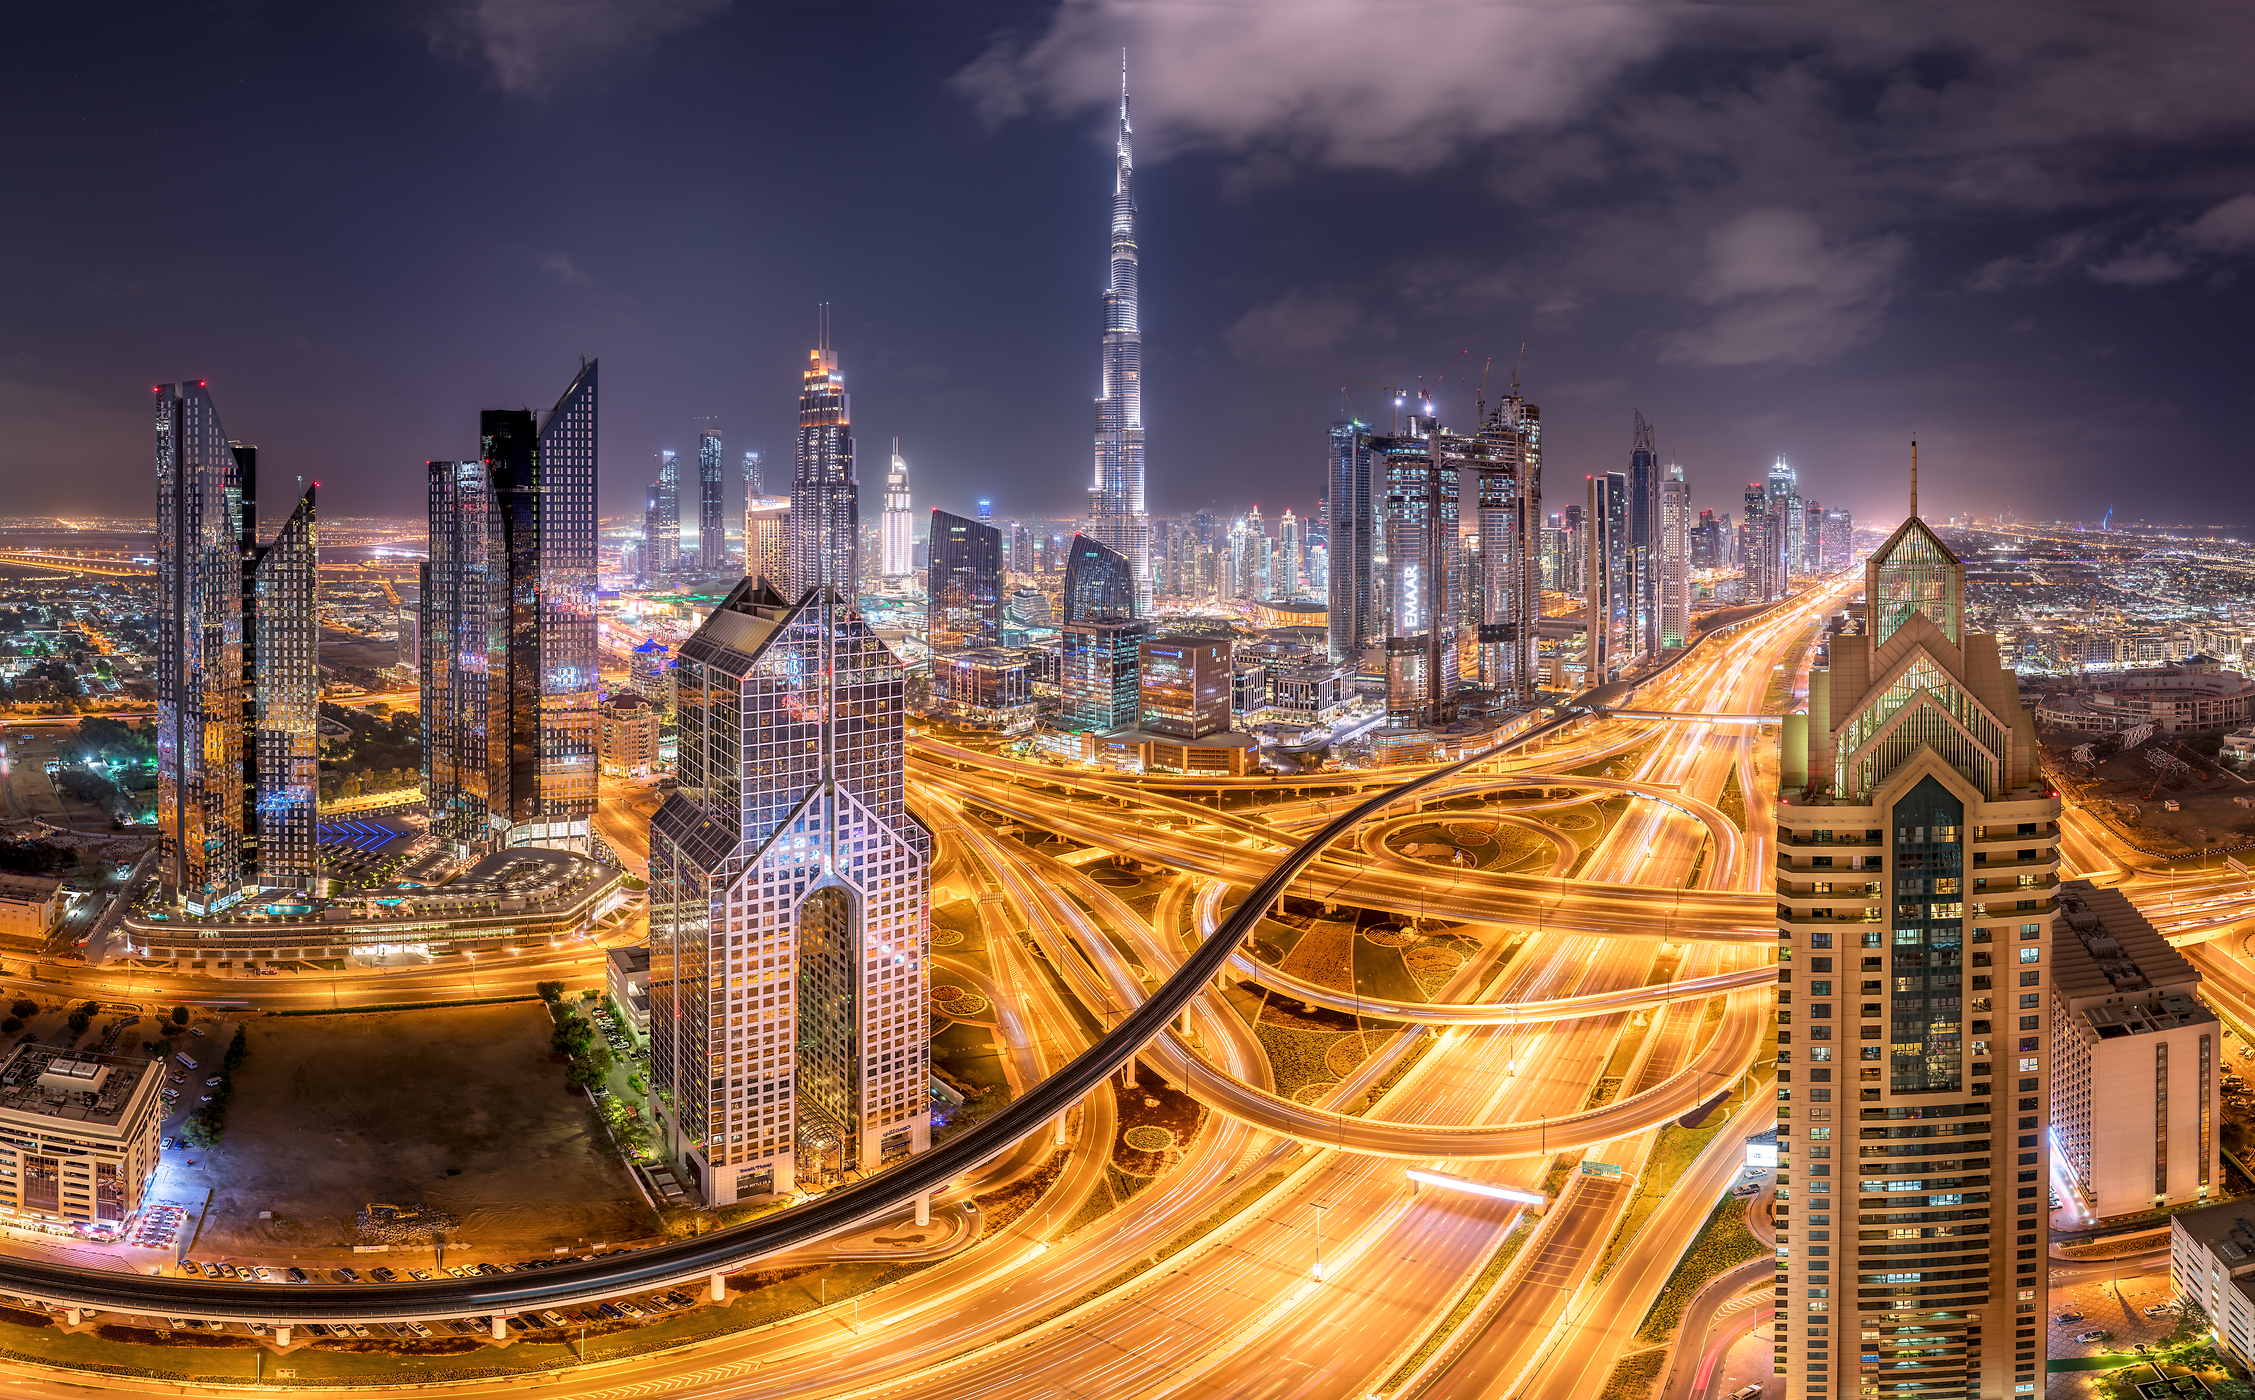 505 megapixels! A very high resolution, large-format VAST photo of the Dubai skyline and roads at night with the Burj Khalifa; fine art cityscape photograph created by Tim Shields in the United Arab Emirates